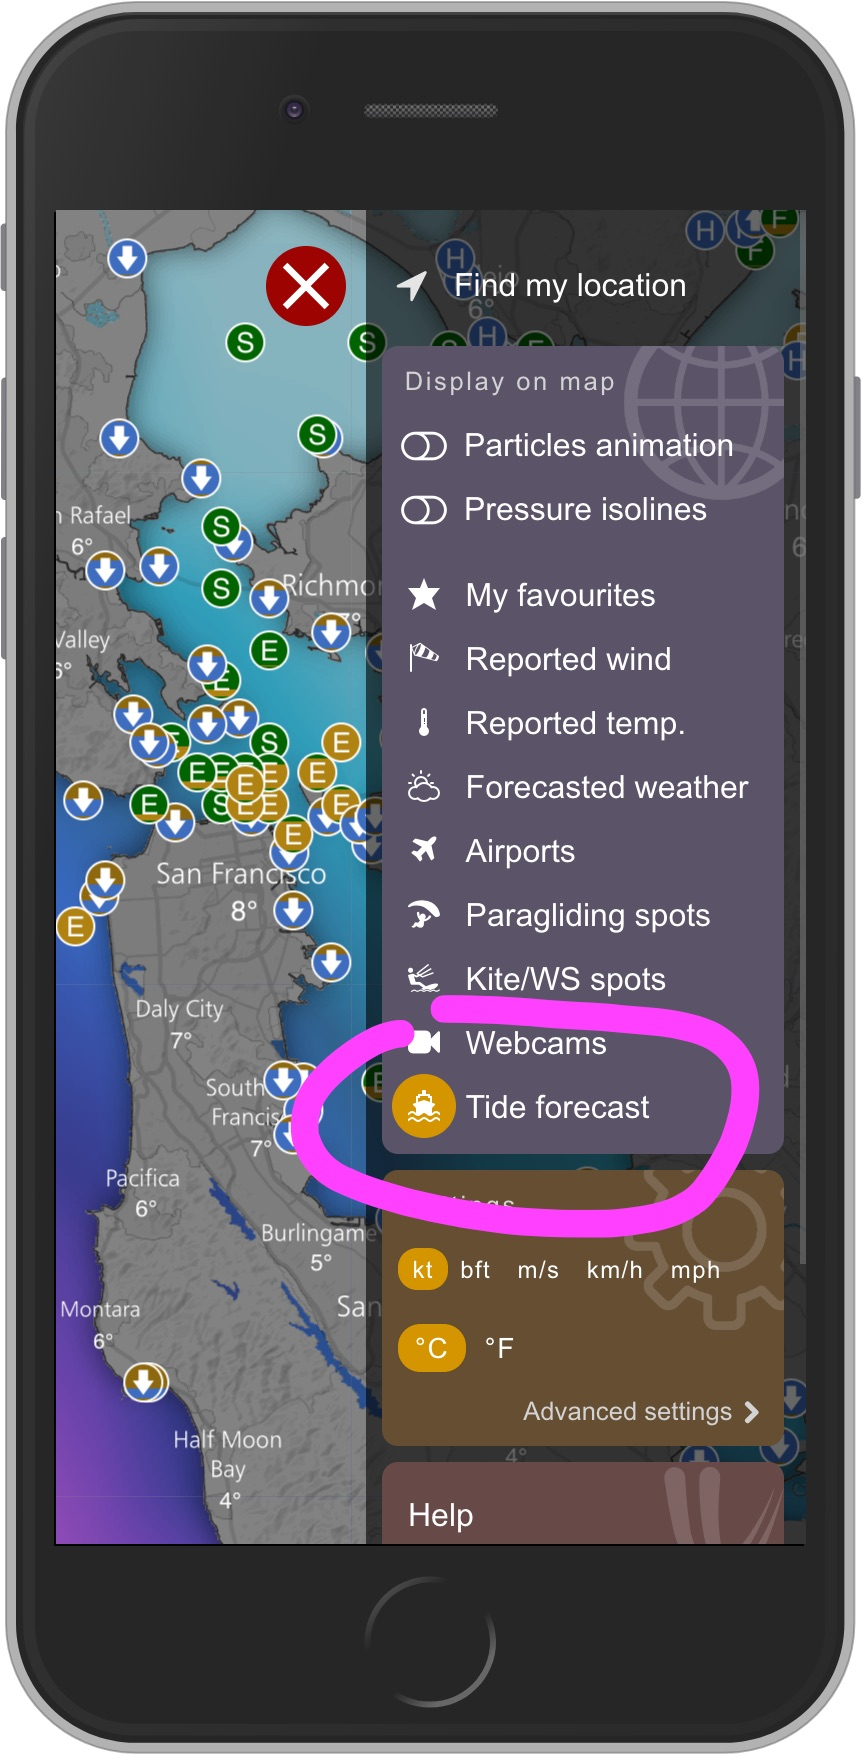 Tide forecast on windy windy community beware tides can be forecasted only at certain tide stations where measurement has been made some fraudulent mobile apps try to convince you nvjuhfo Image collections